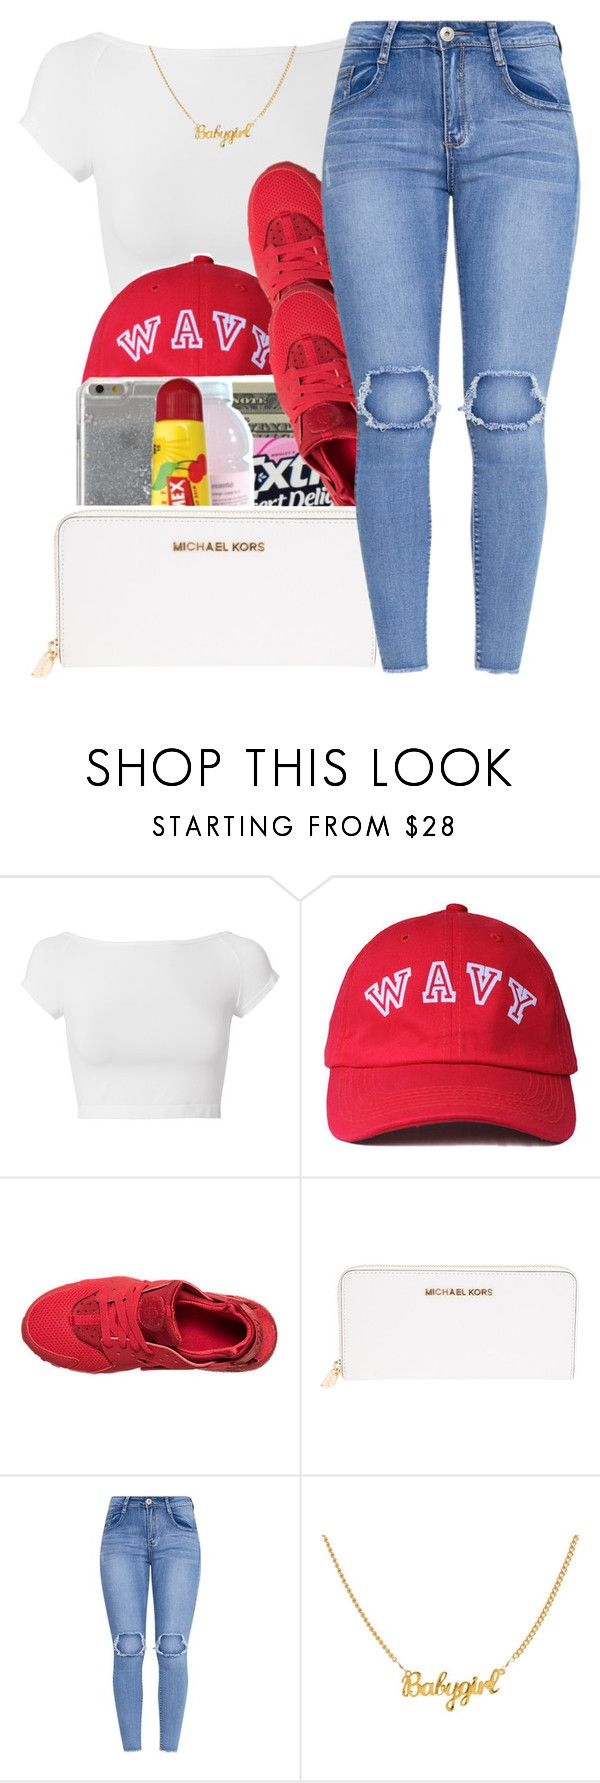 """First fvck❣️[6lack]"" by maiyaxbabyyy ❤ liked on Polyvore featuring Helmut Lang, NIKE and Michael Kors"